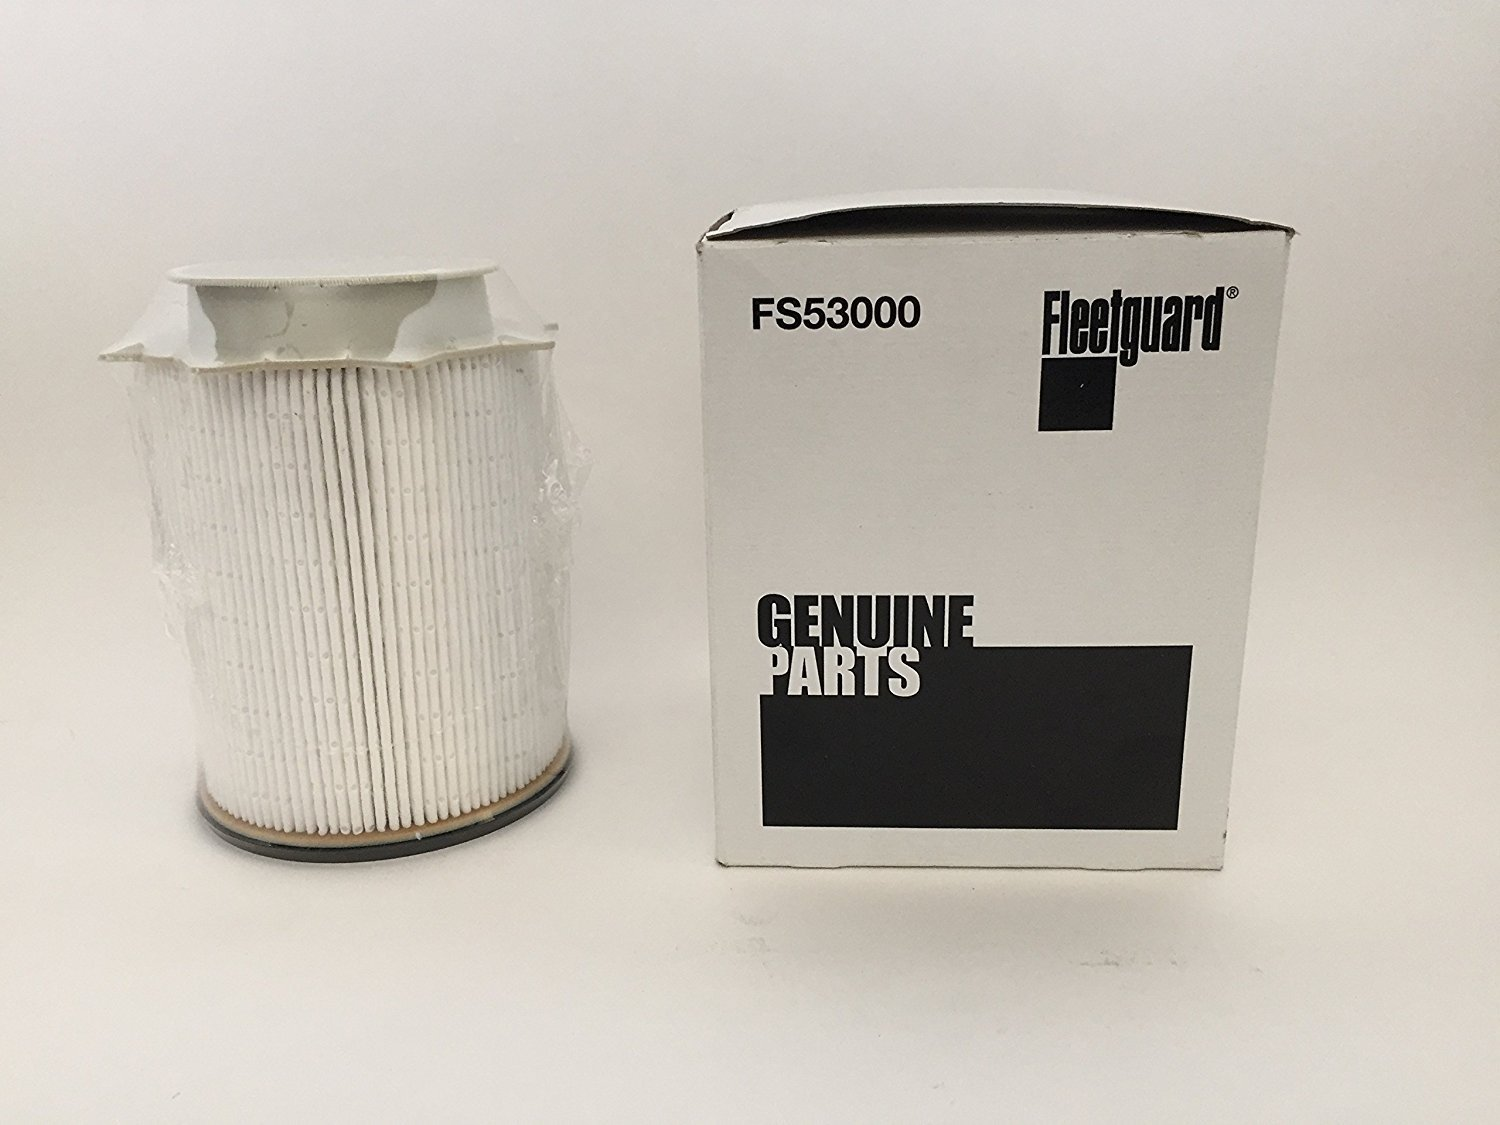 Fleetguard FS53000 (Pack of 2) by Cummins Filtration